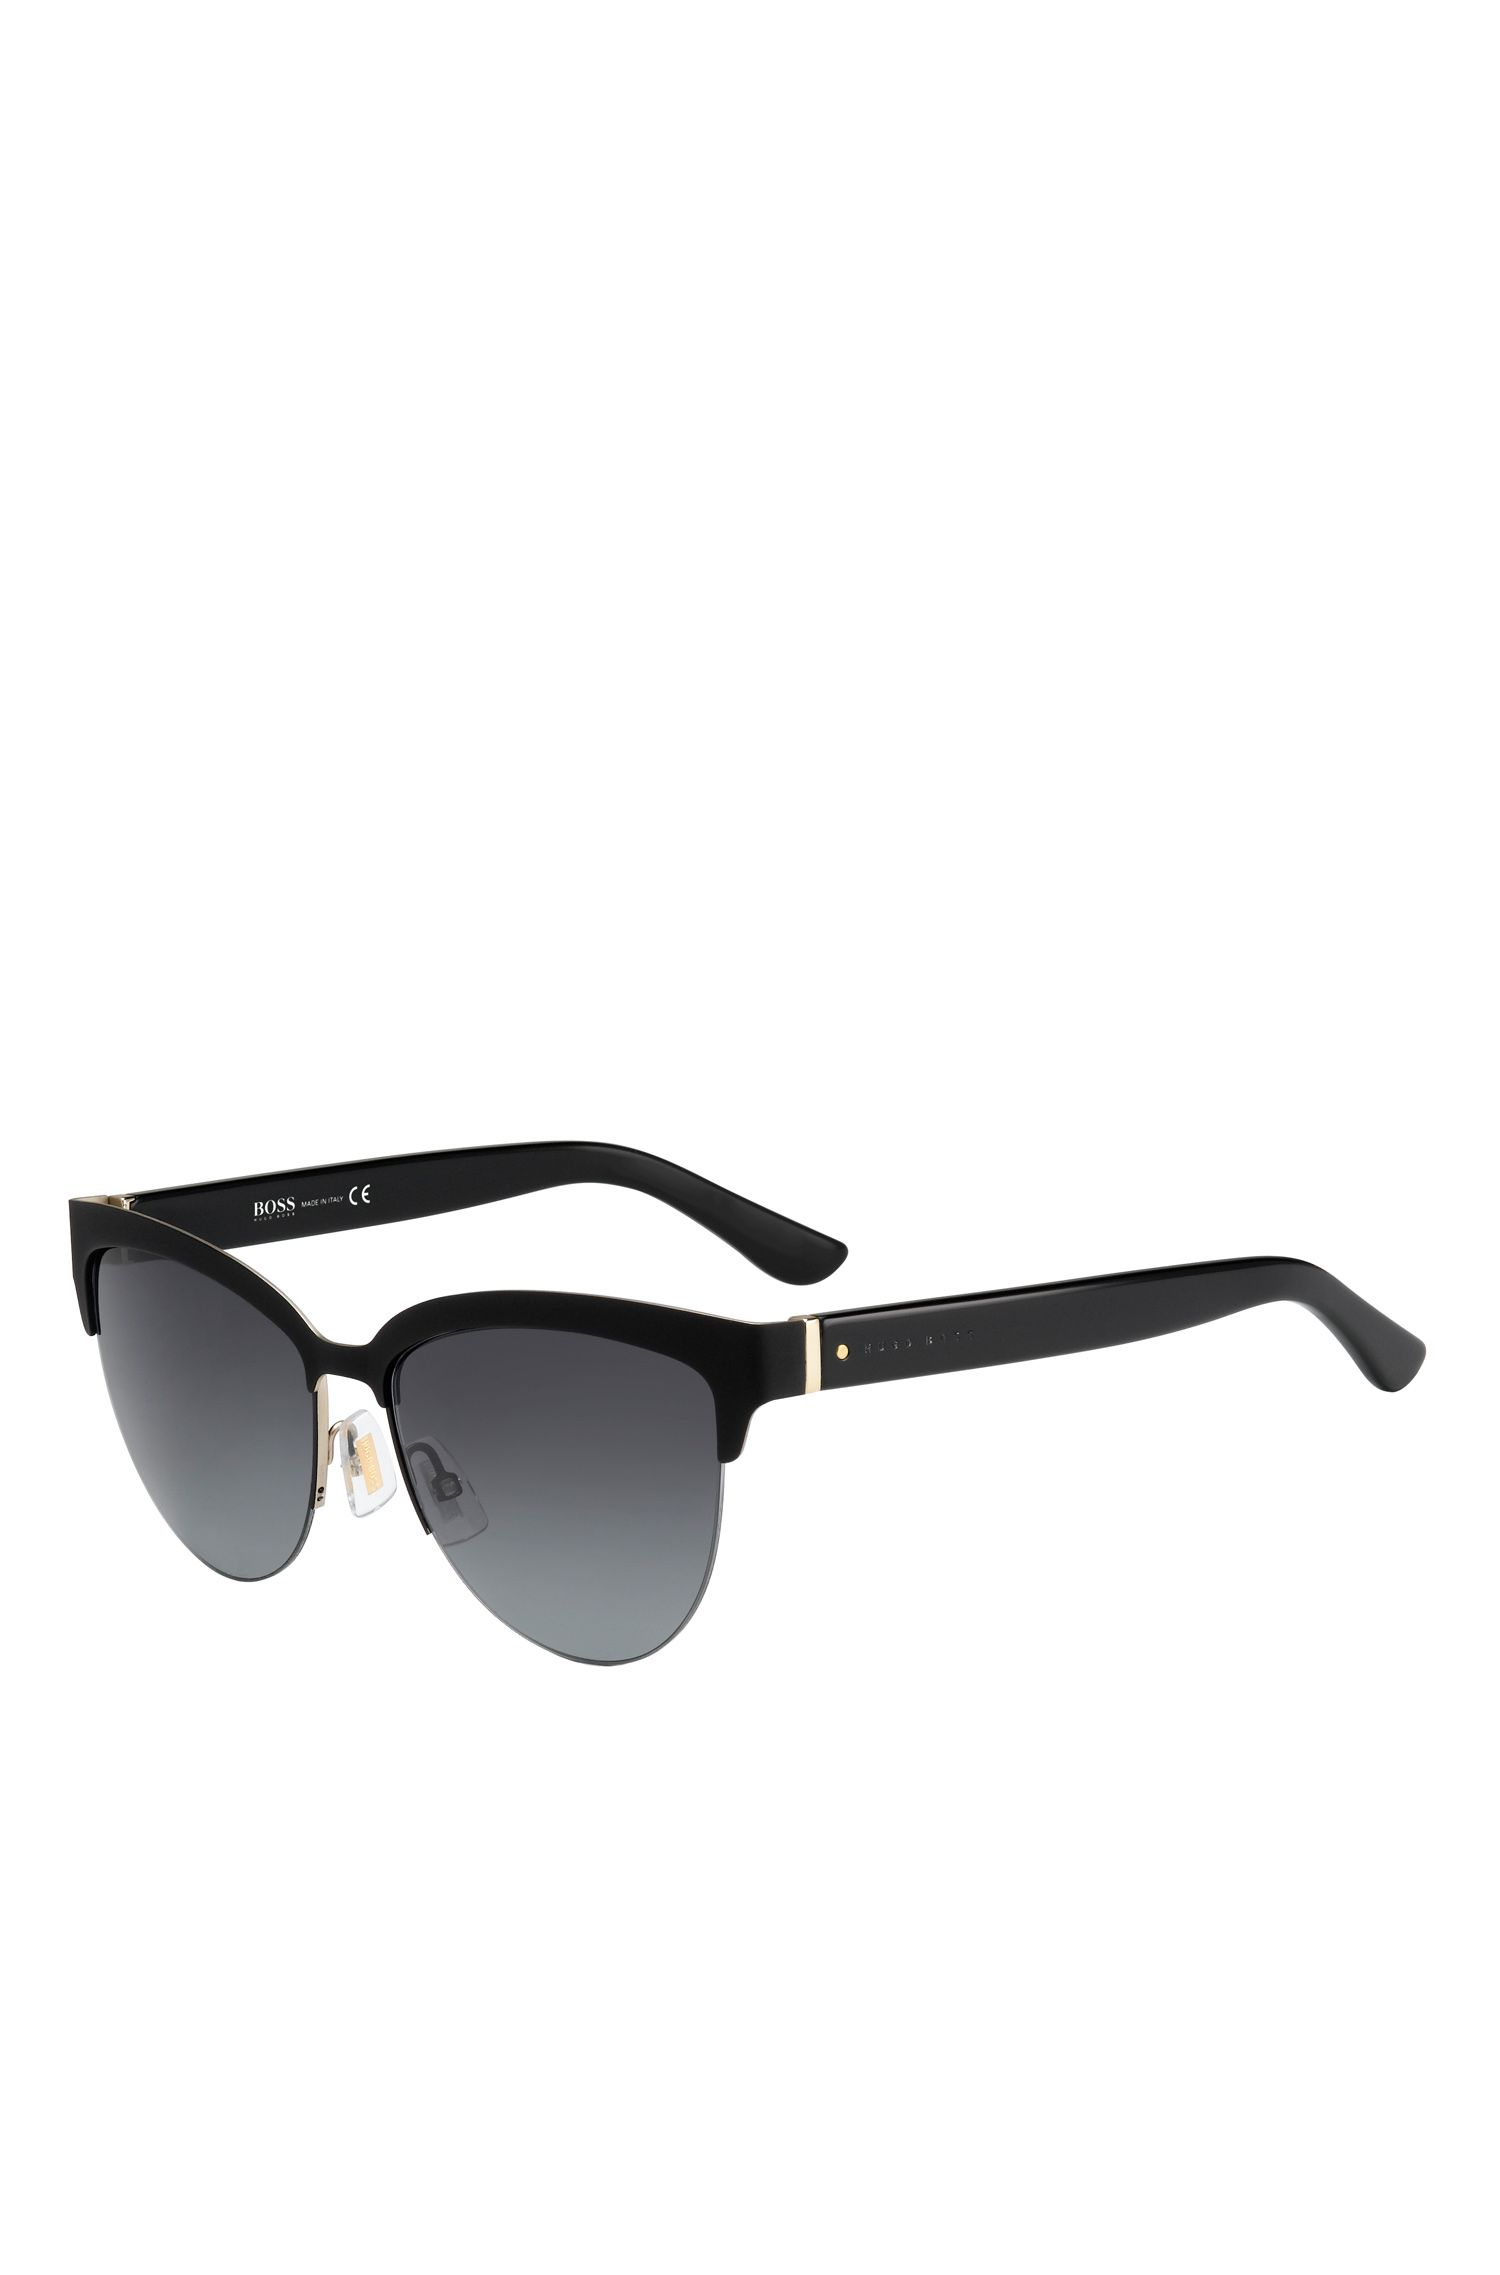 Black Lenses Half-Frame Cateye Sunglasses | BOSS 678S